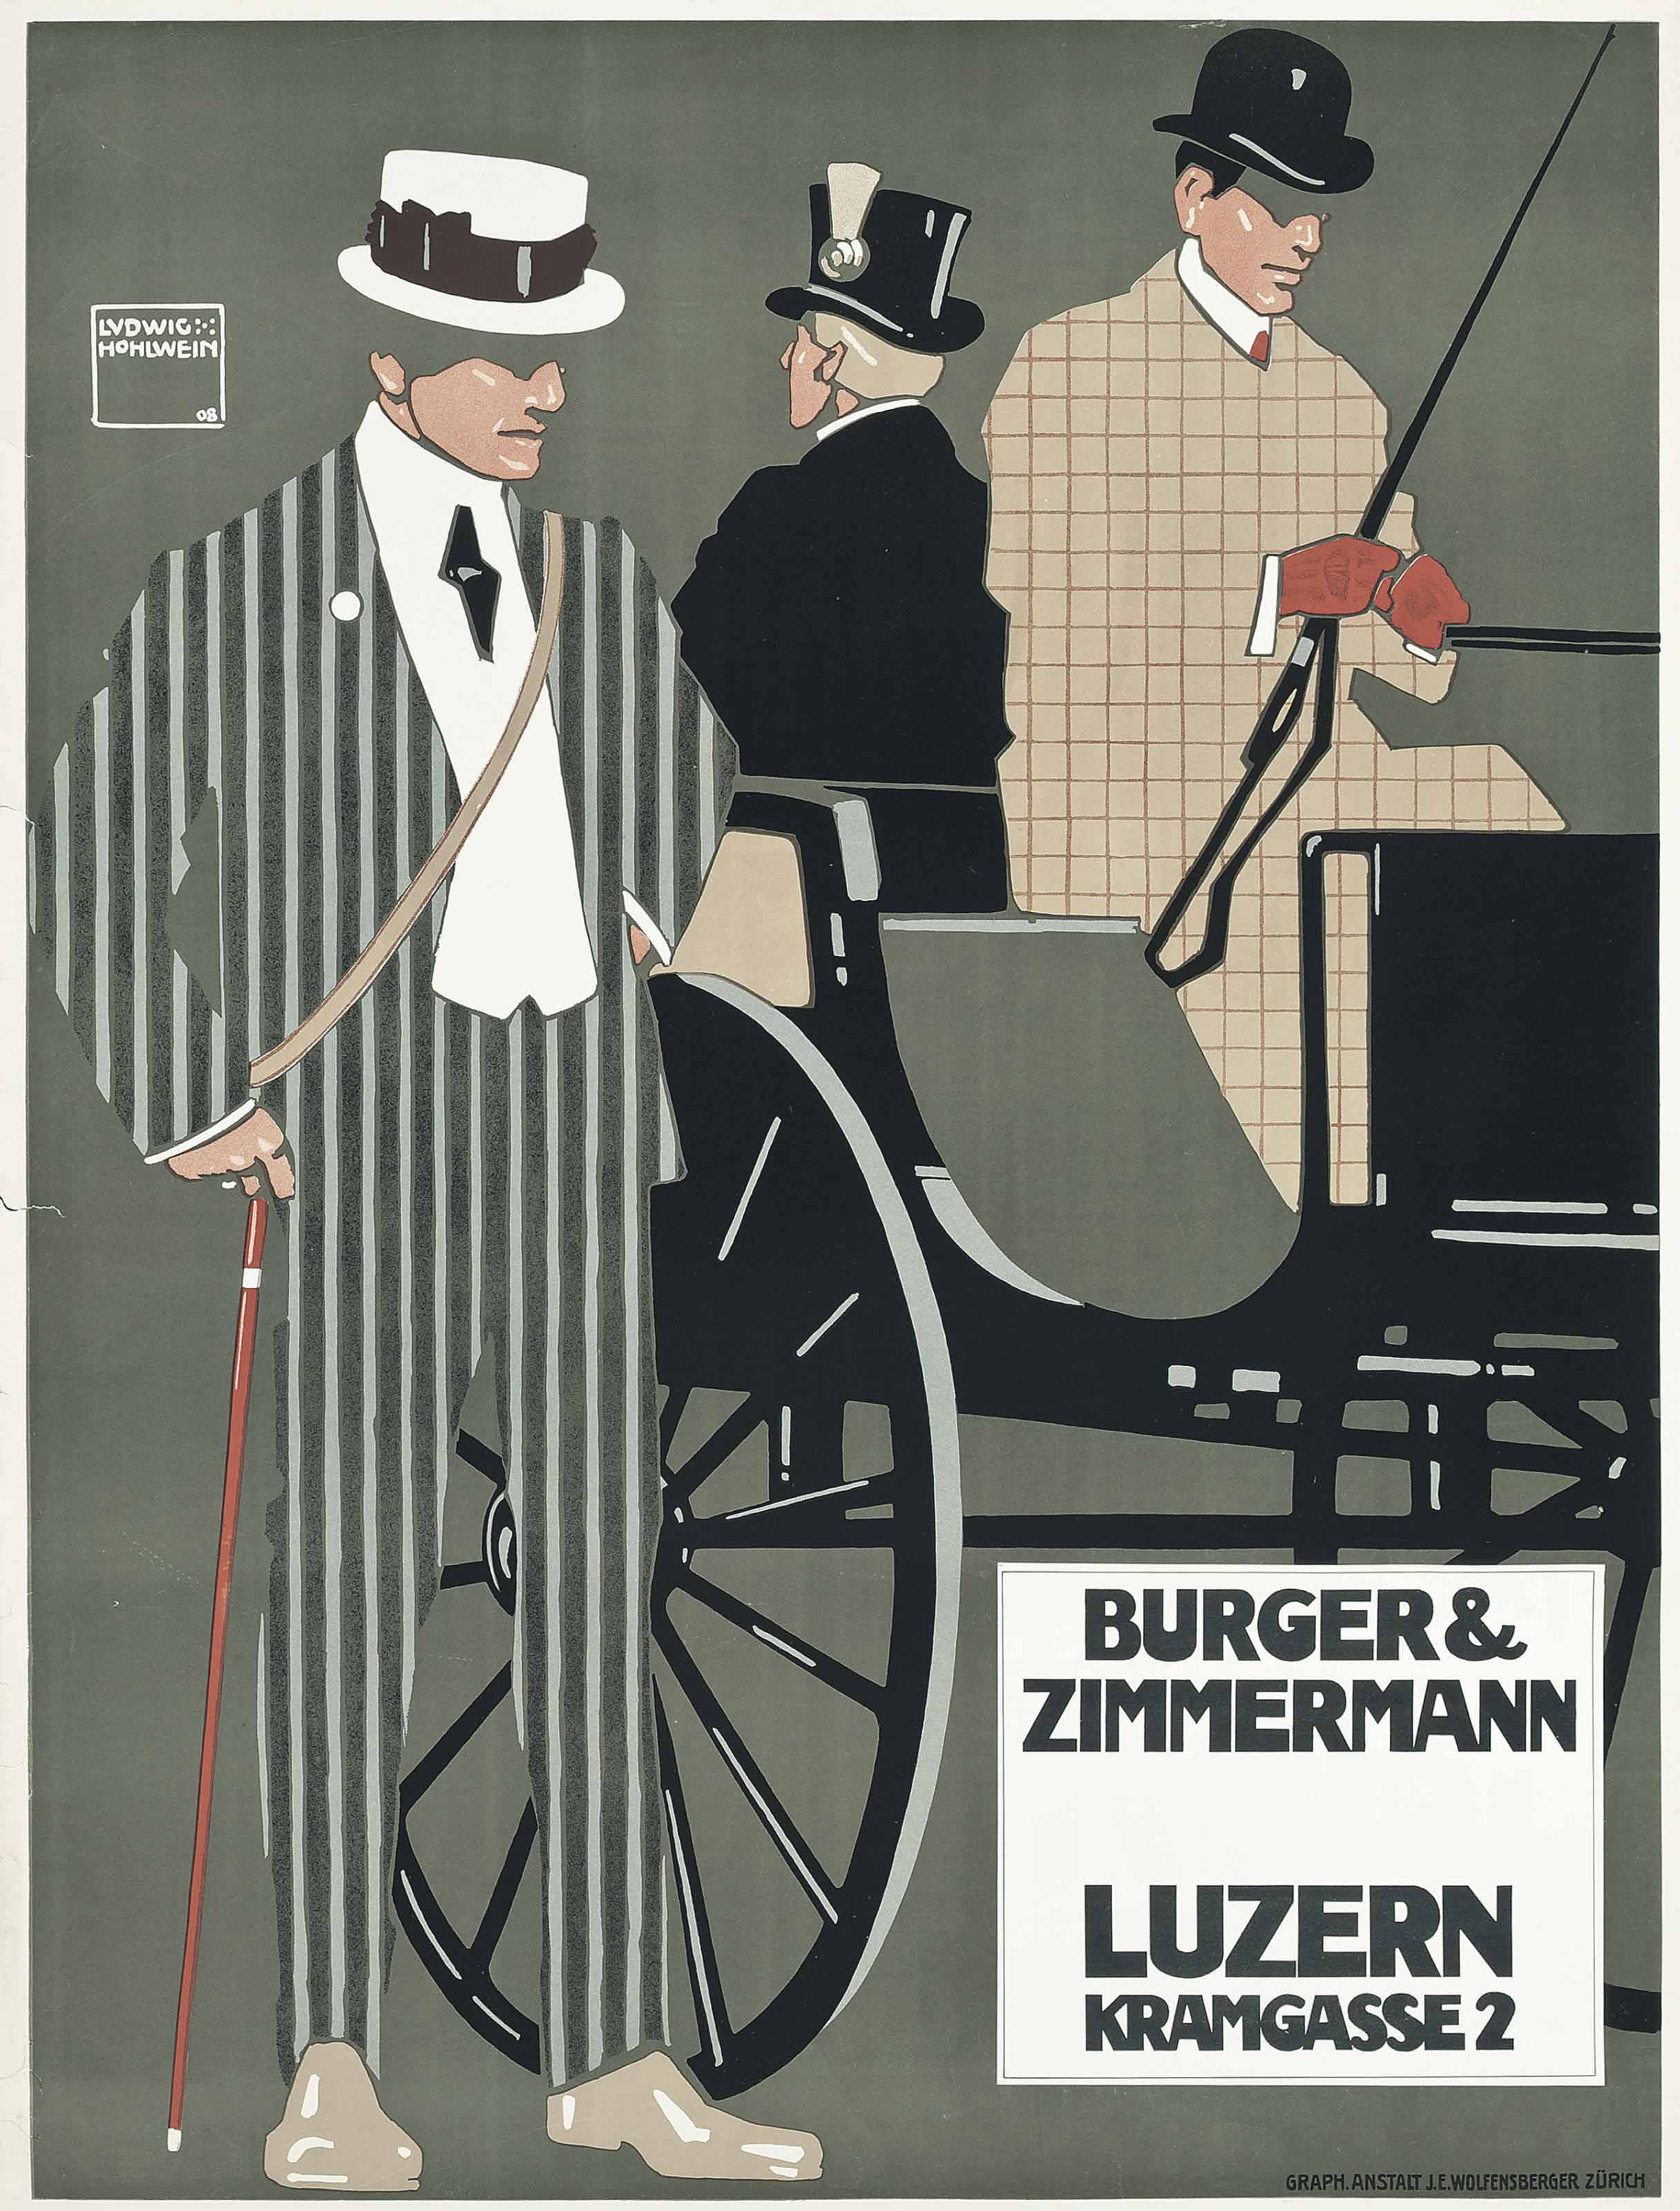 BURGER & ZIMMERMANN